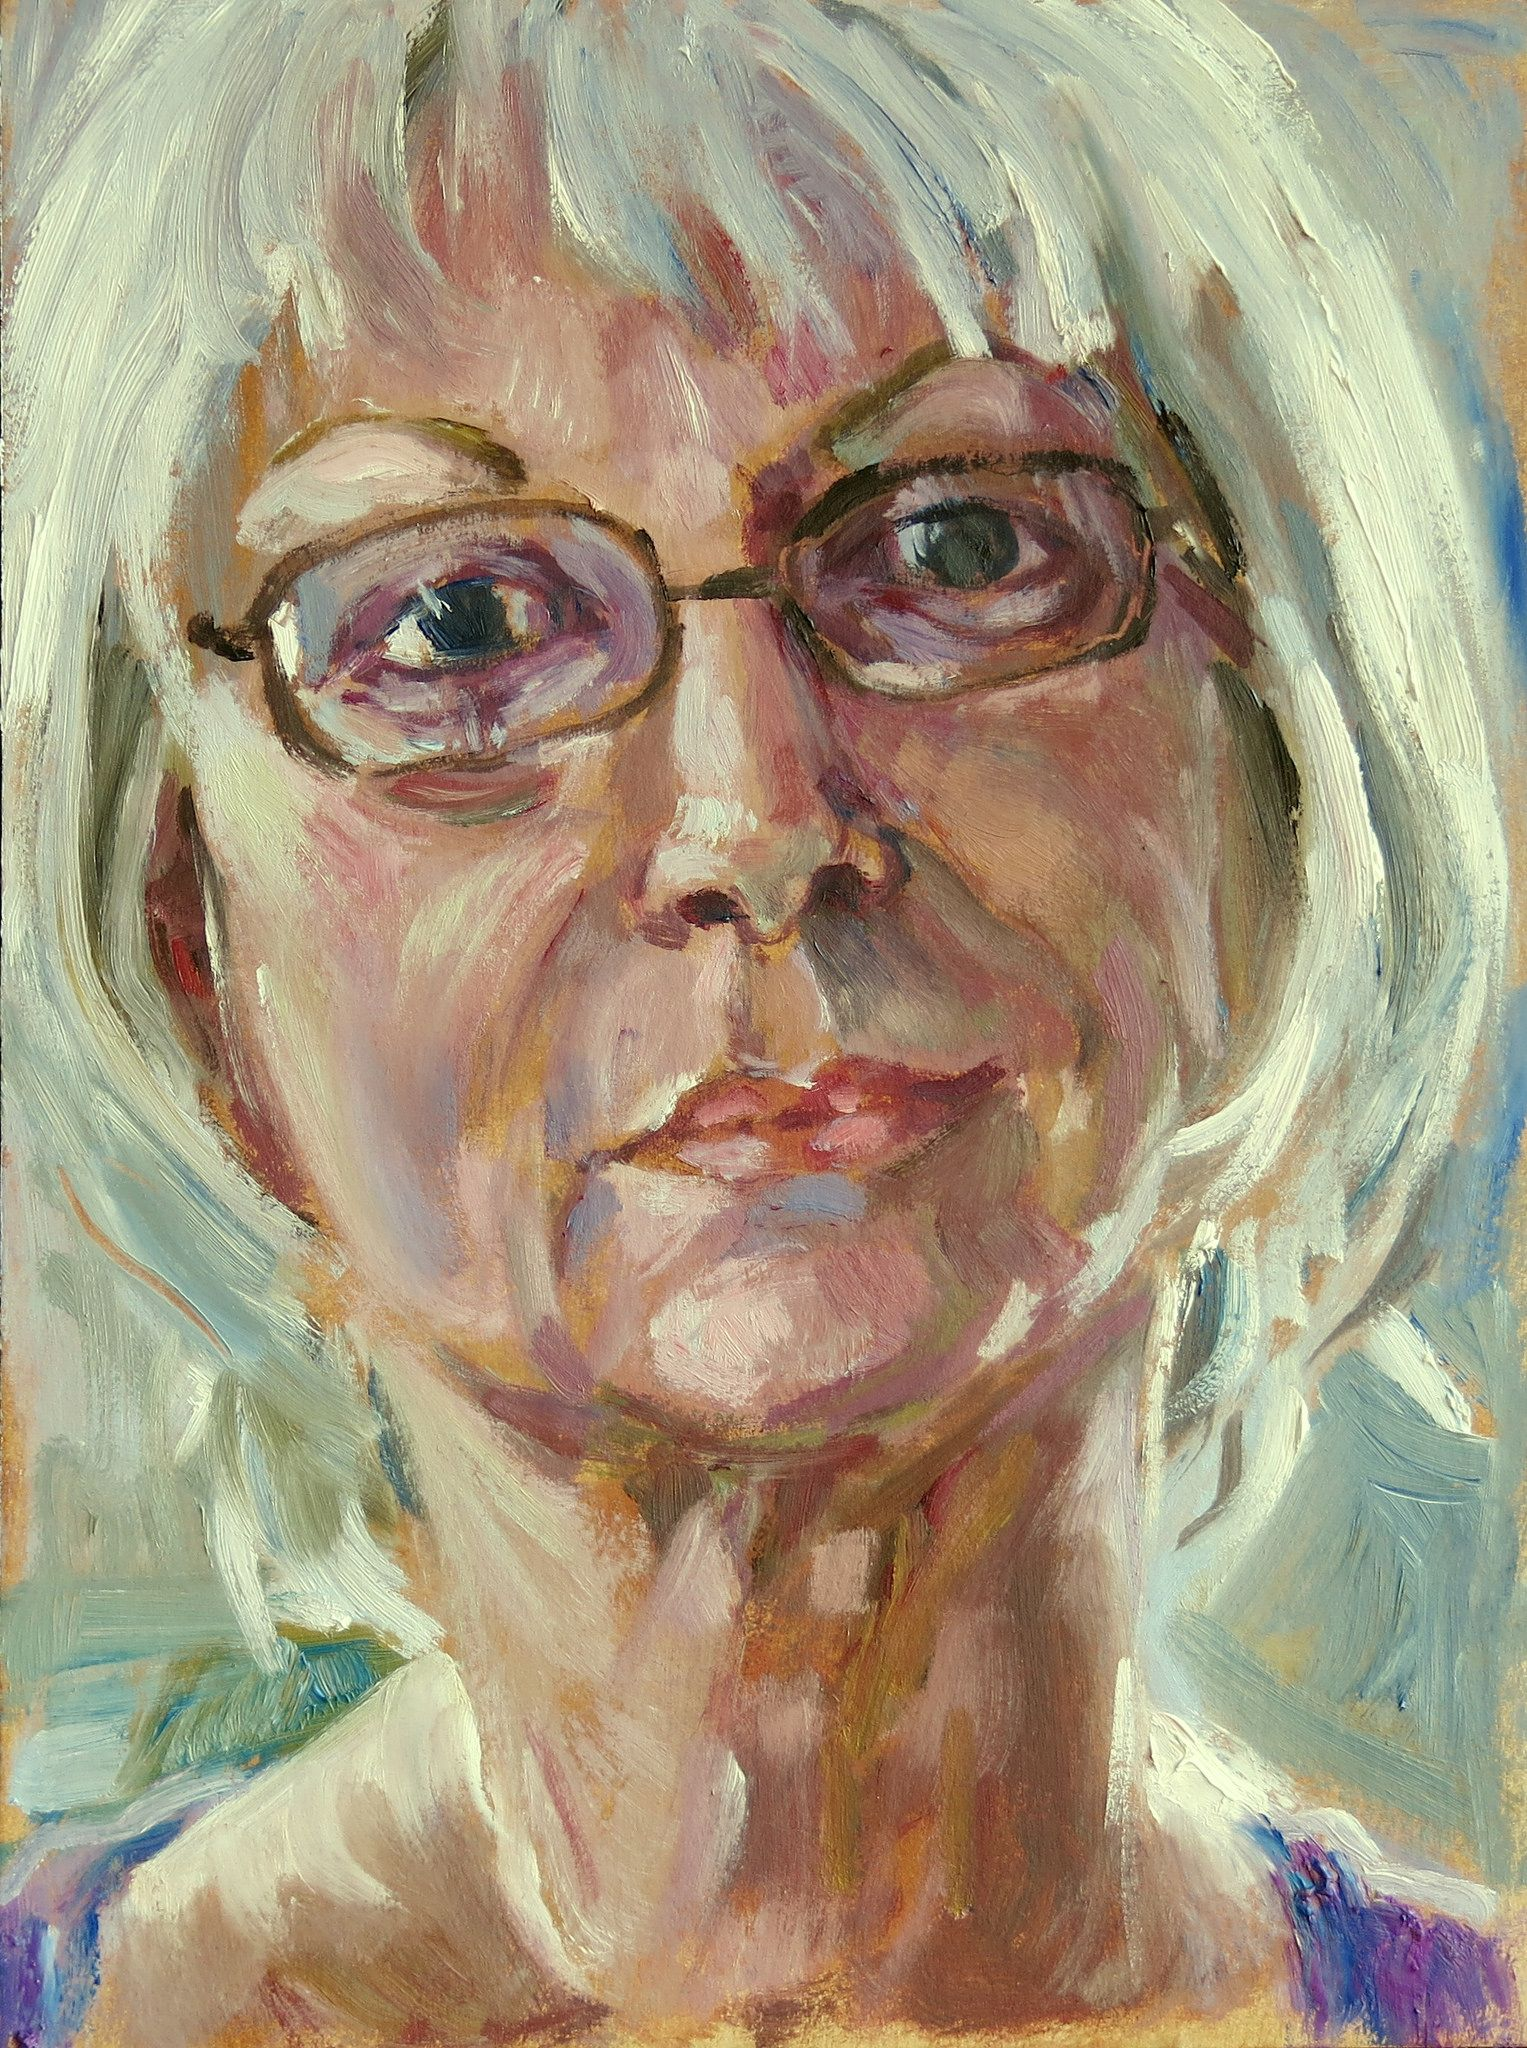 https://flic.kr/p/pmSqqY | paula ko | oil  on paper, on ochre ground  www.flickr.com/groups/portraitparty/discuss/7215763973387...